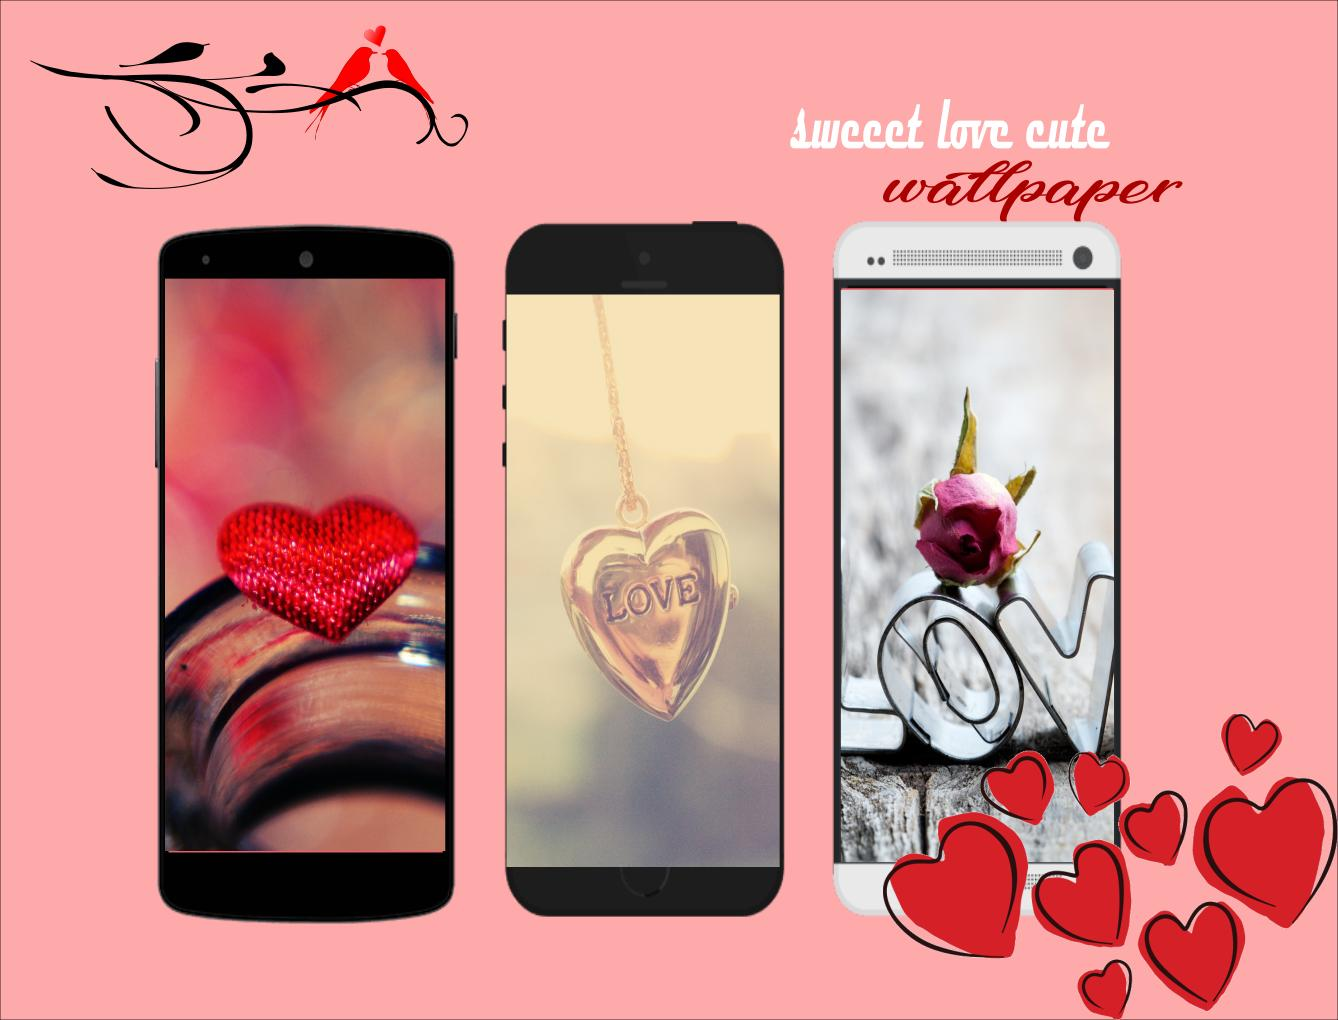 Cute Love Wallpaper Hd For Android Apk Download